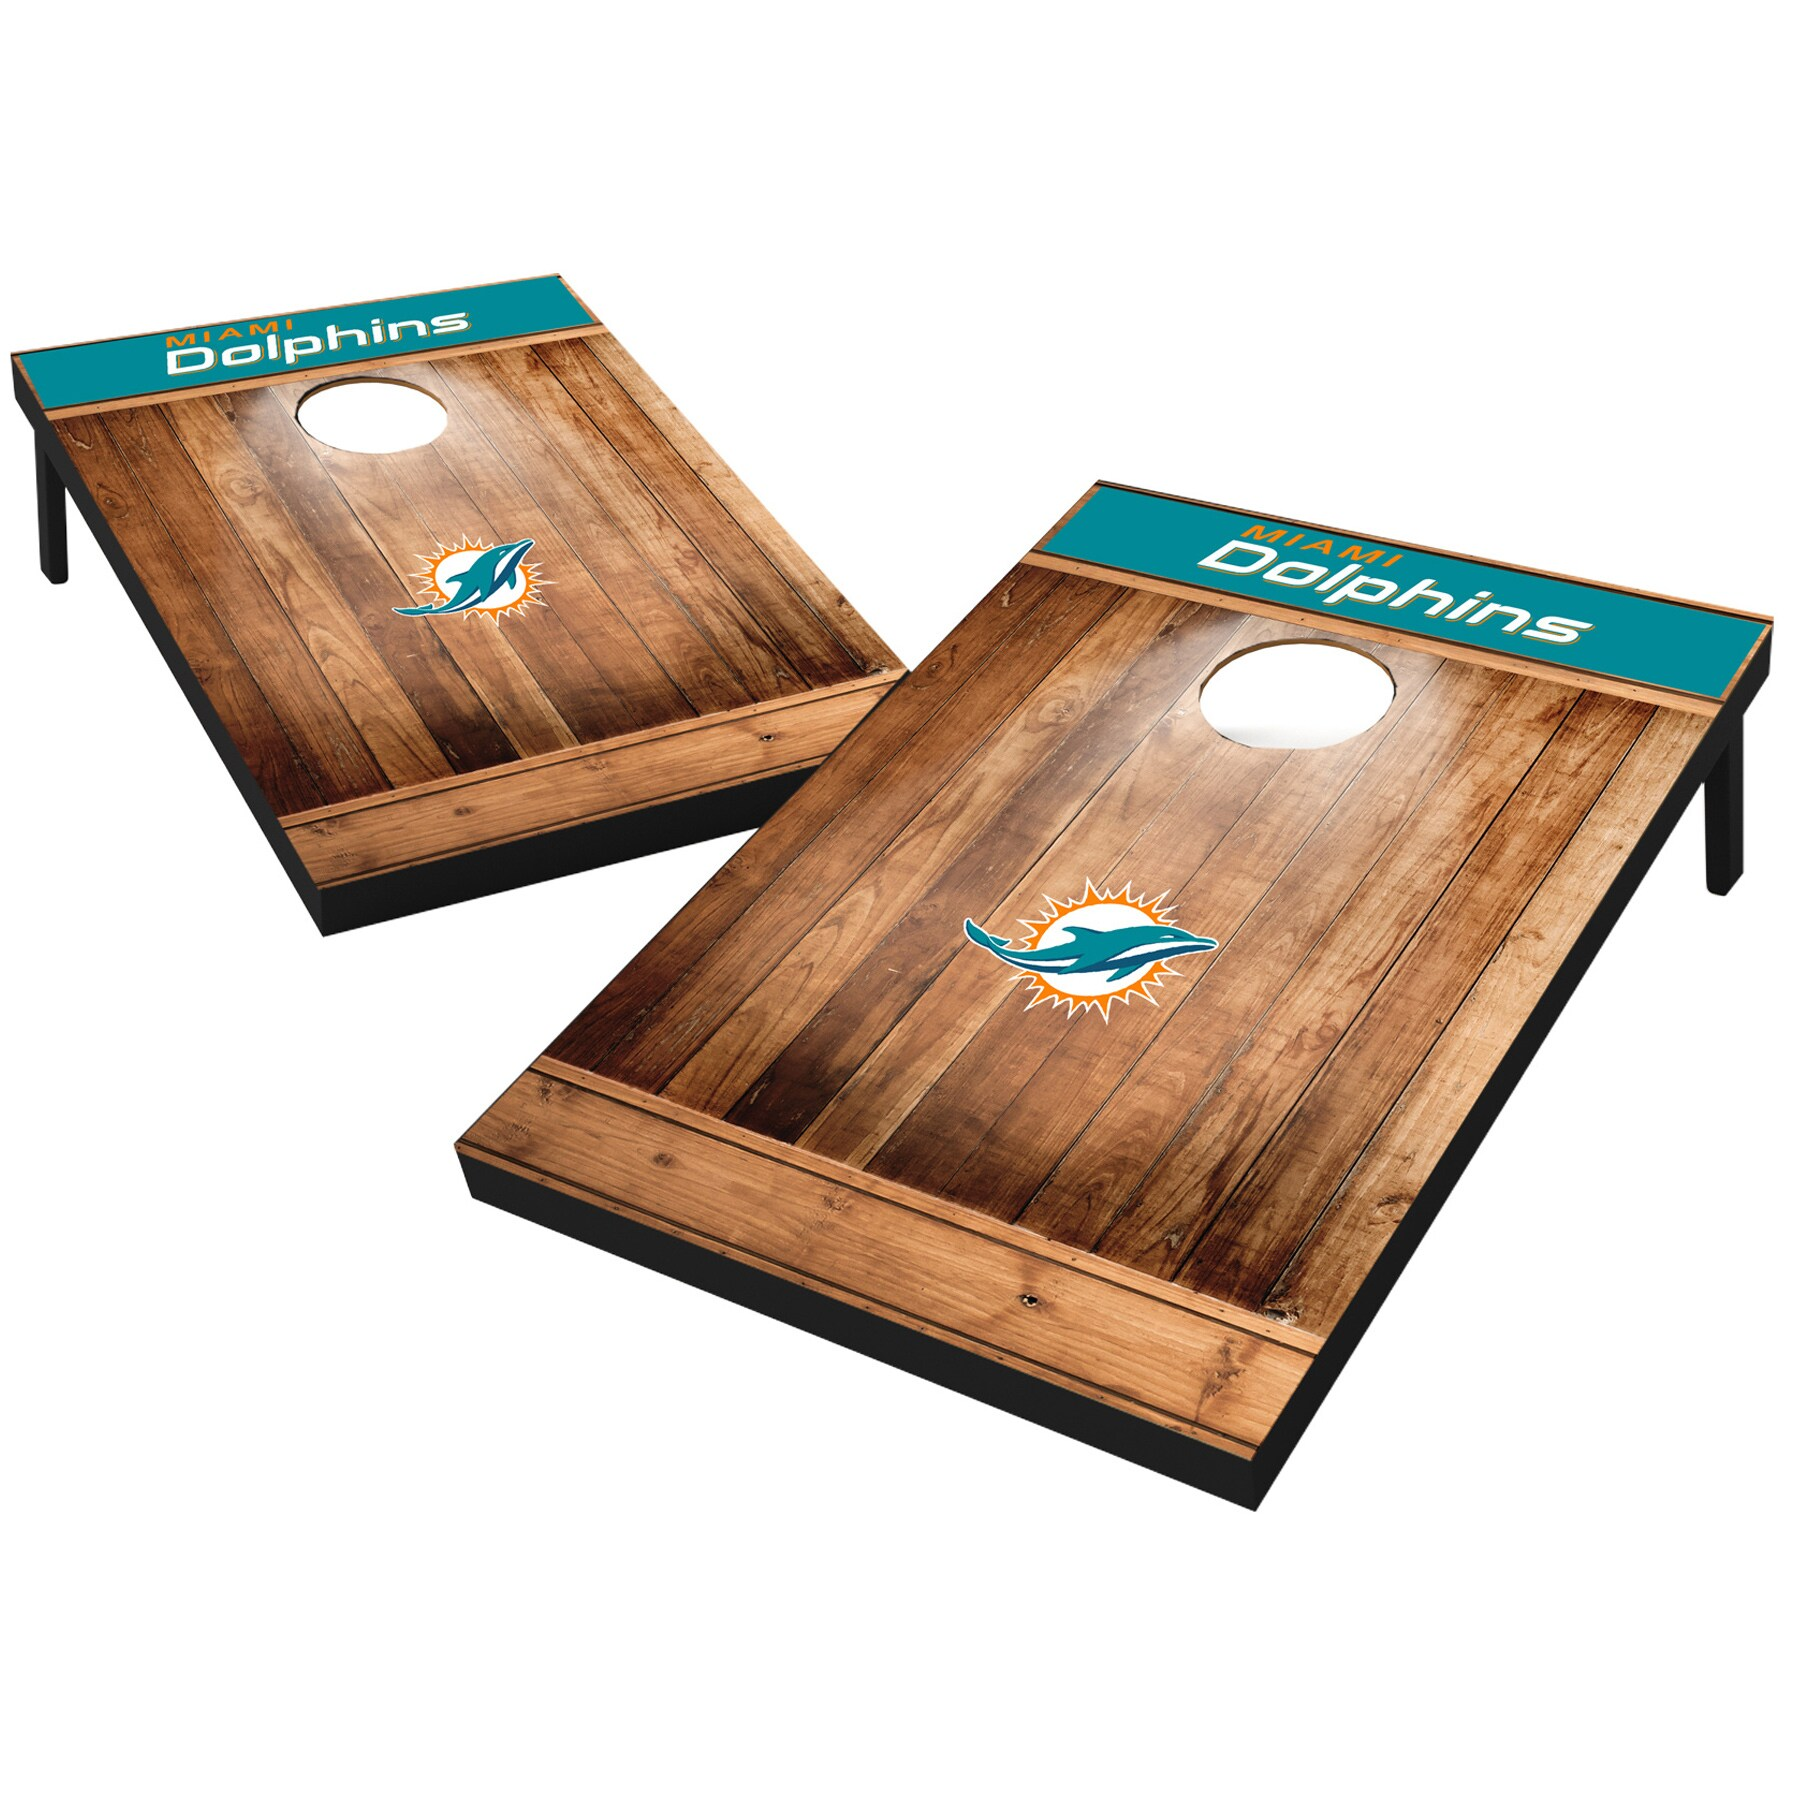 Miami Dolphins 2' x 3' Wood Design Cornhole Board Tailgate Toss Set